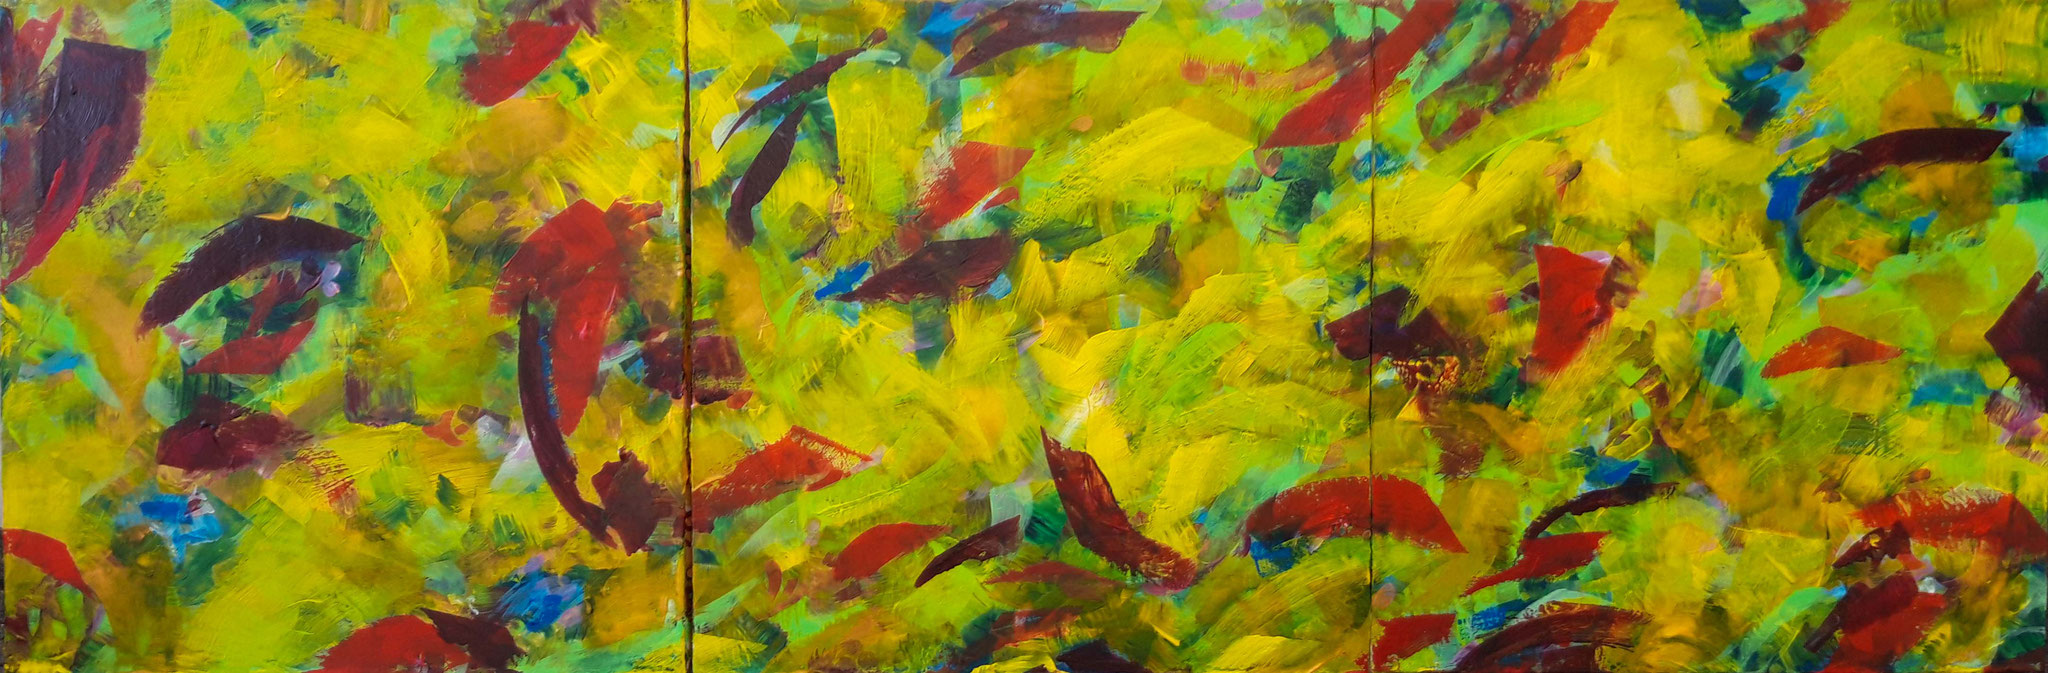 Sommerwiese-1 (150x50 cm)